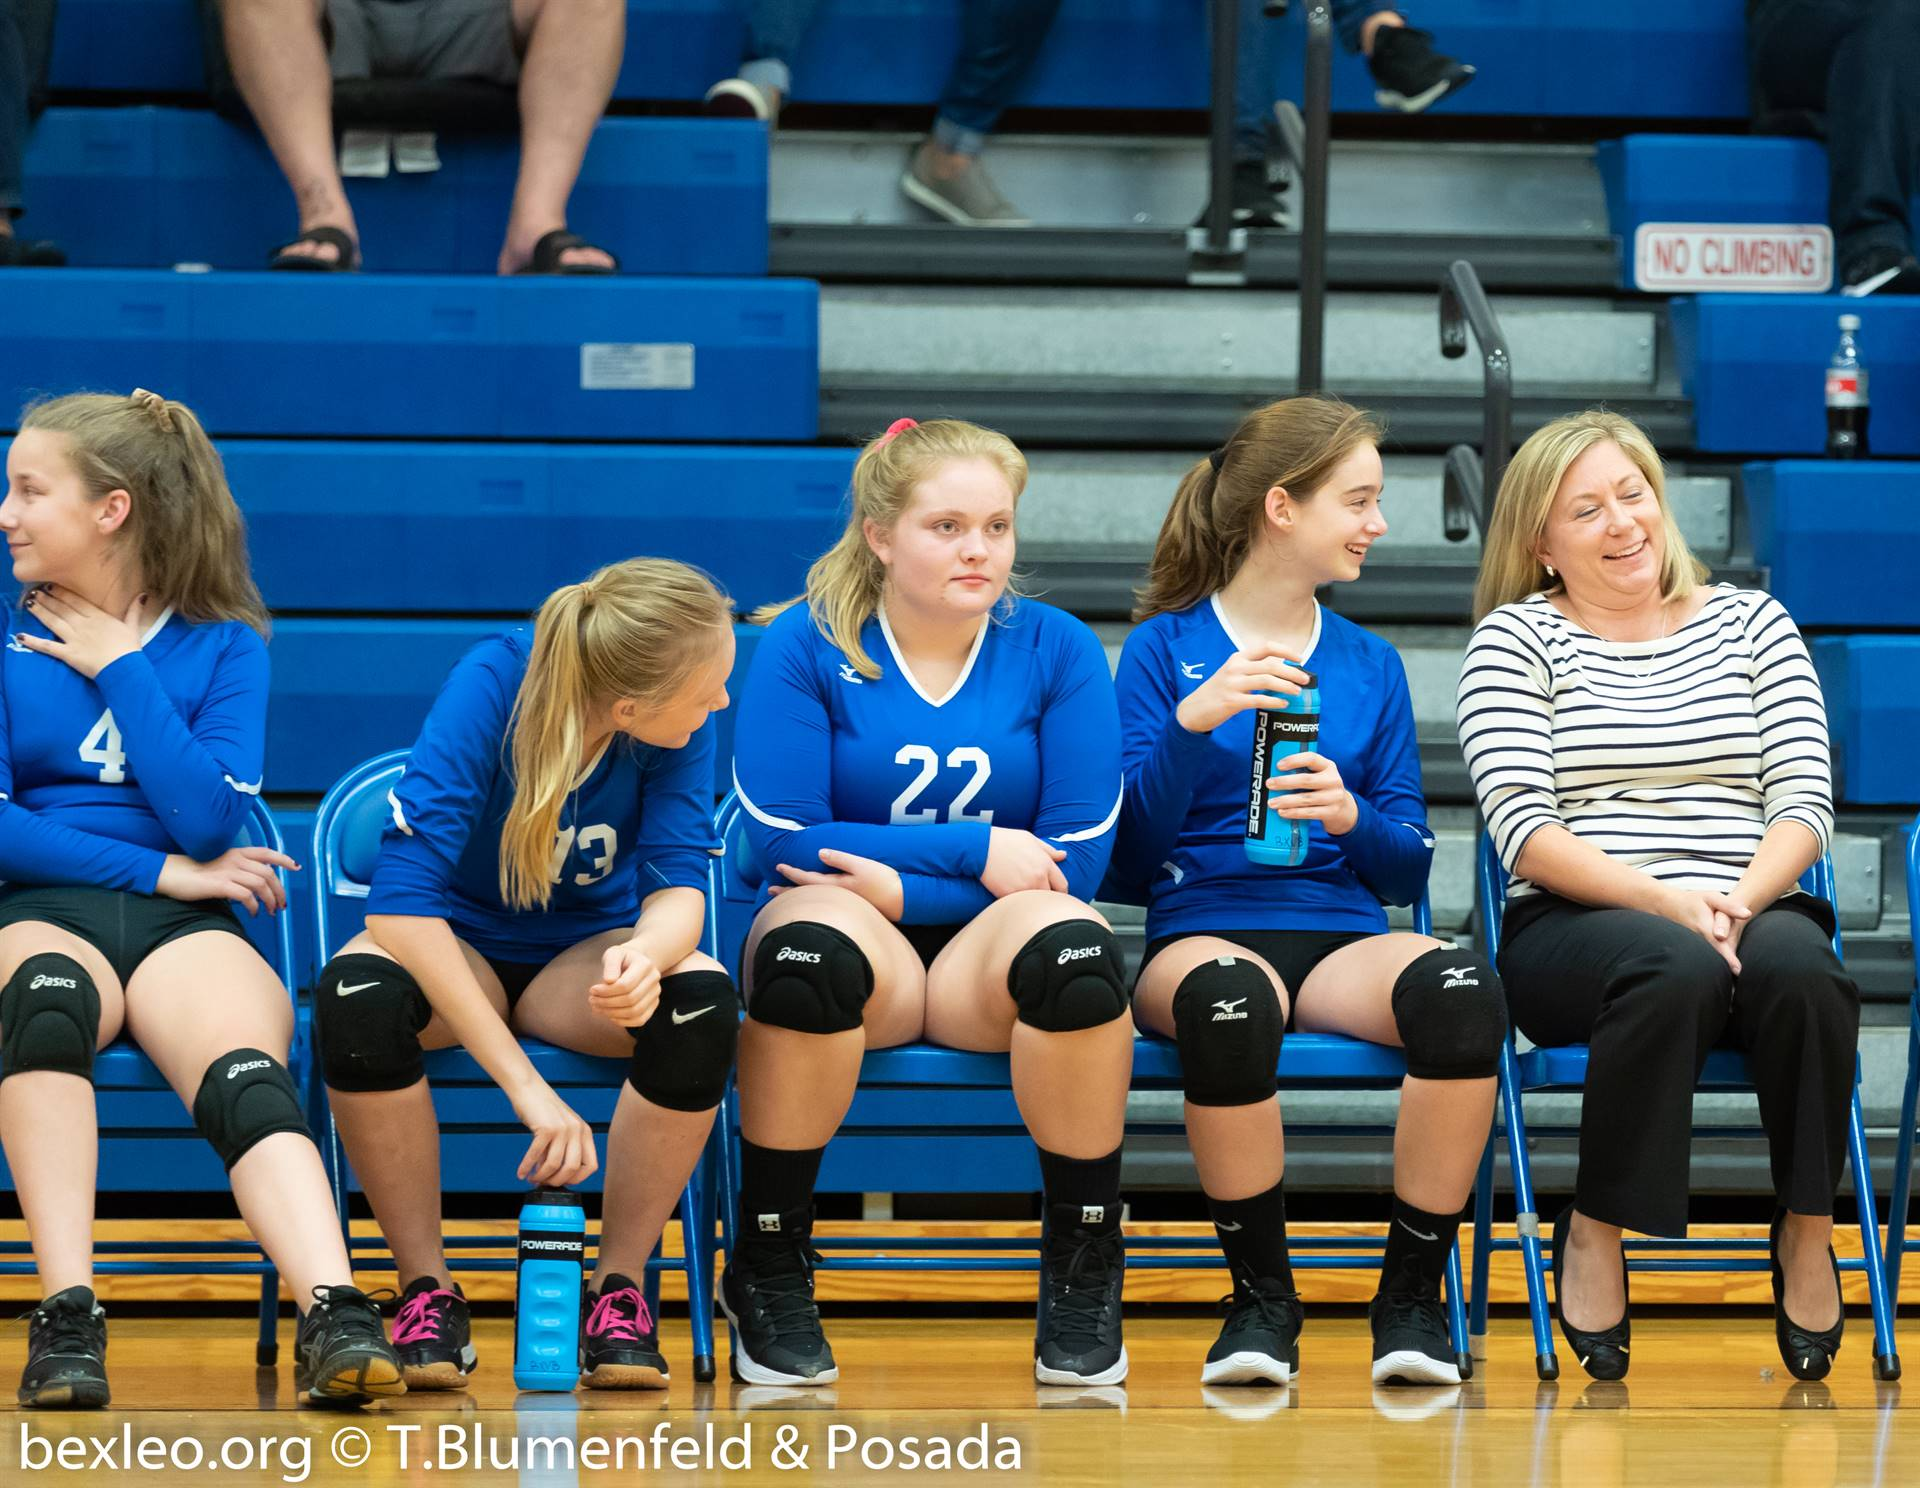 Volleyball players sharing a laugh with their coach